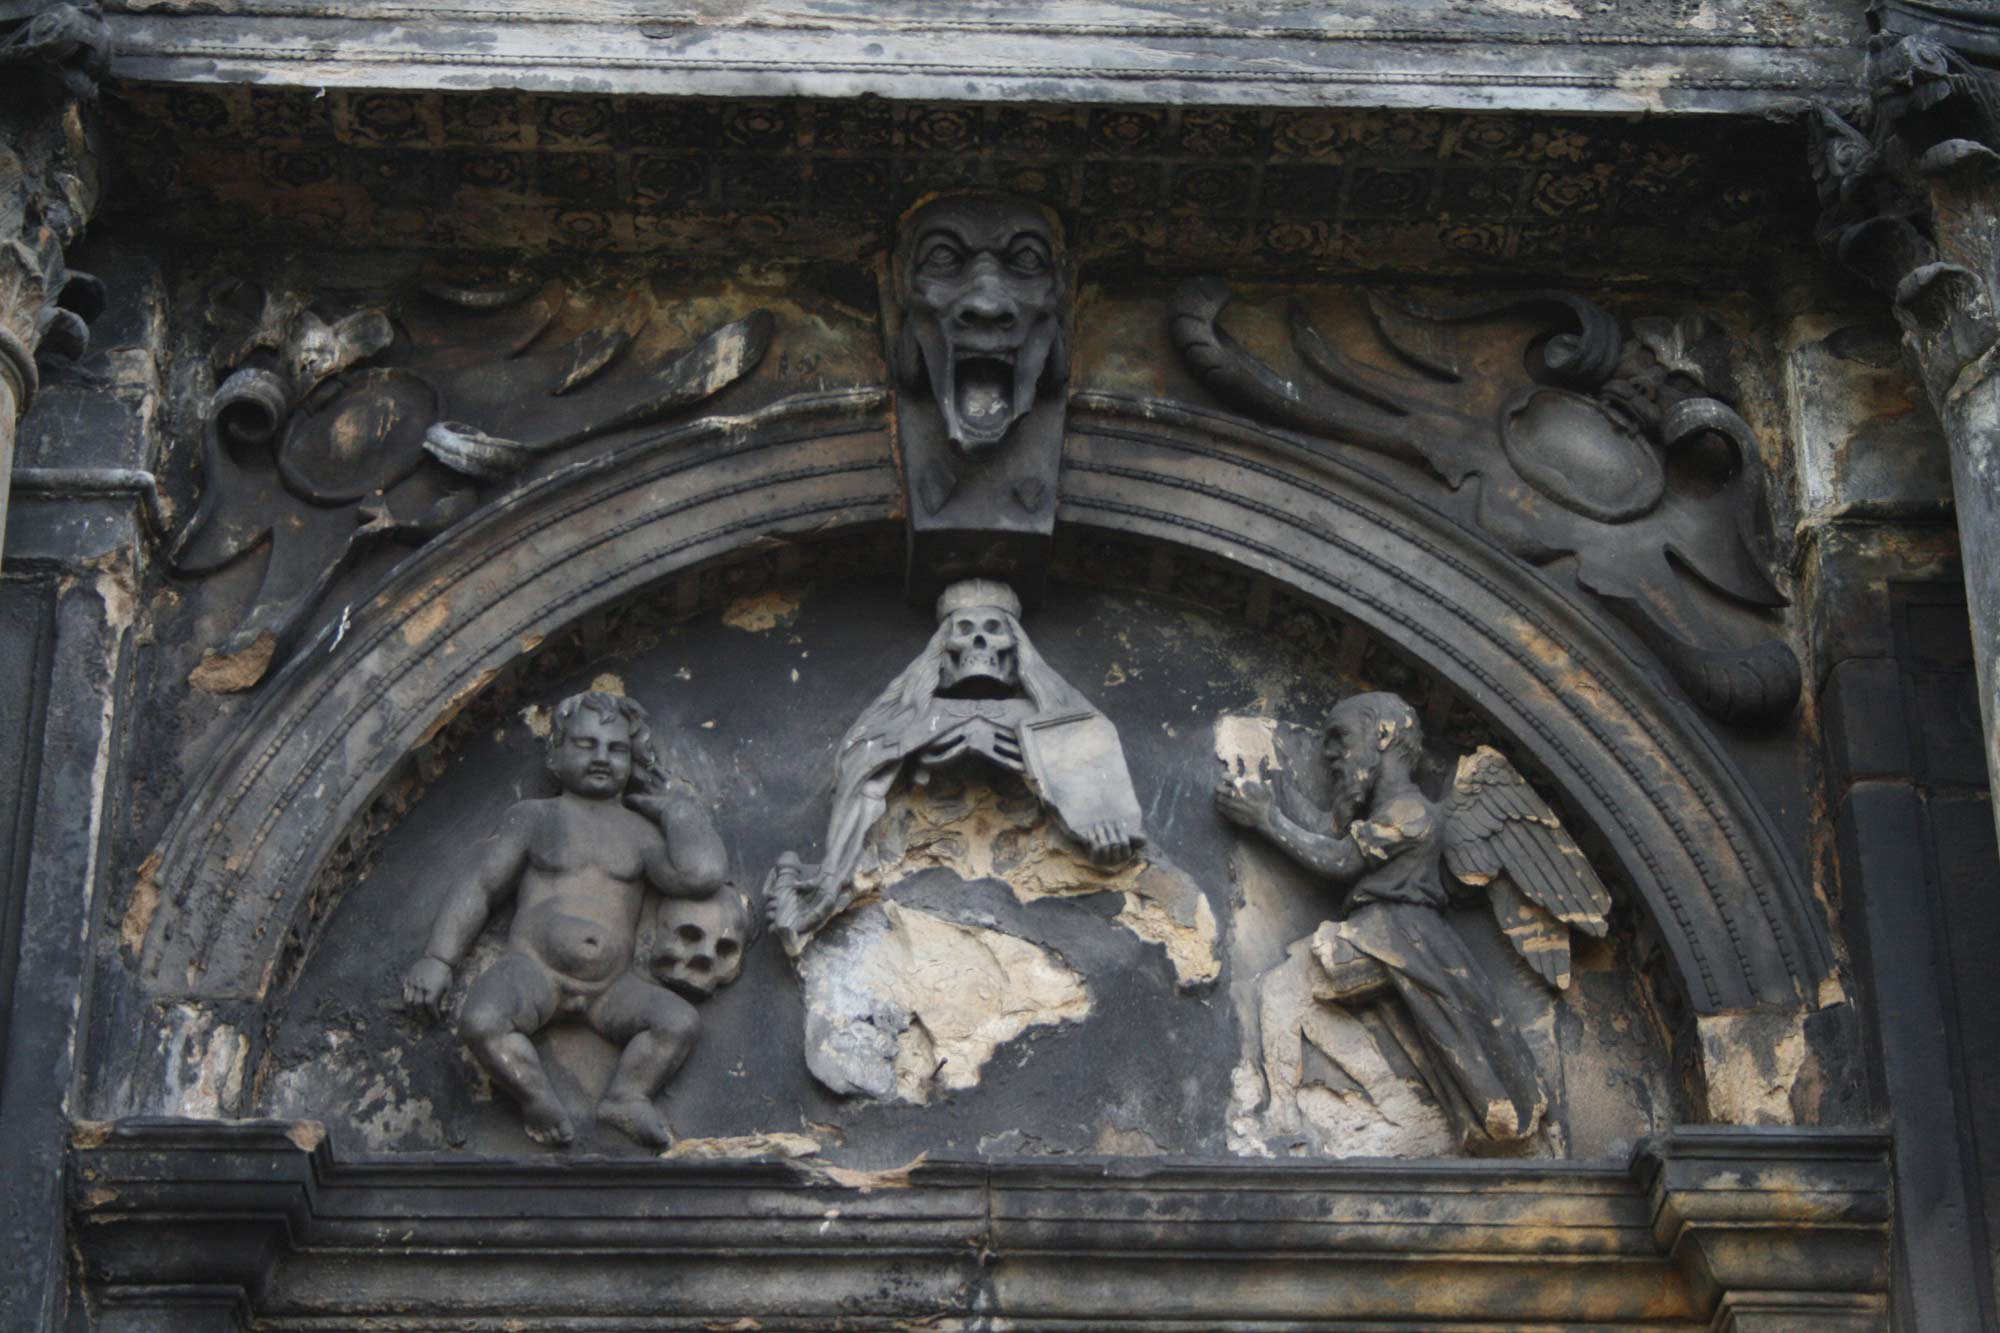 Erosion and damage to sculpture, Greyfriars